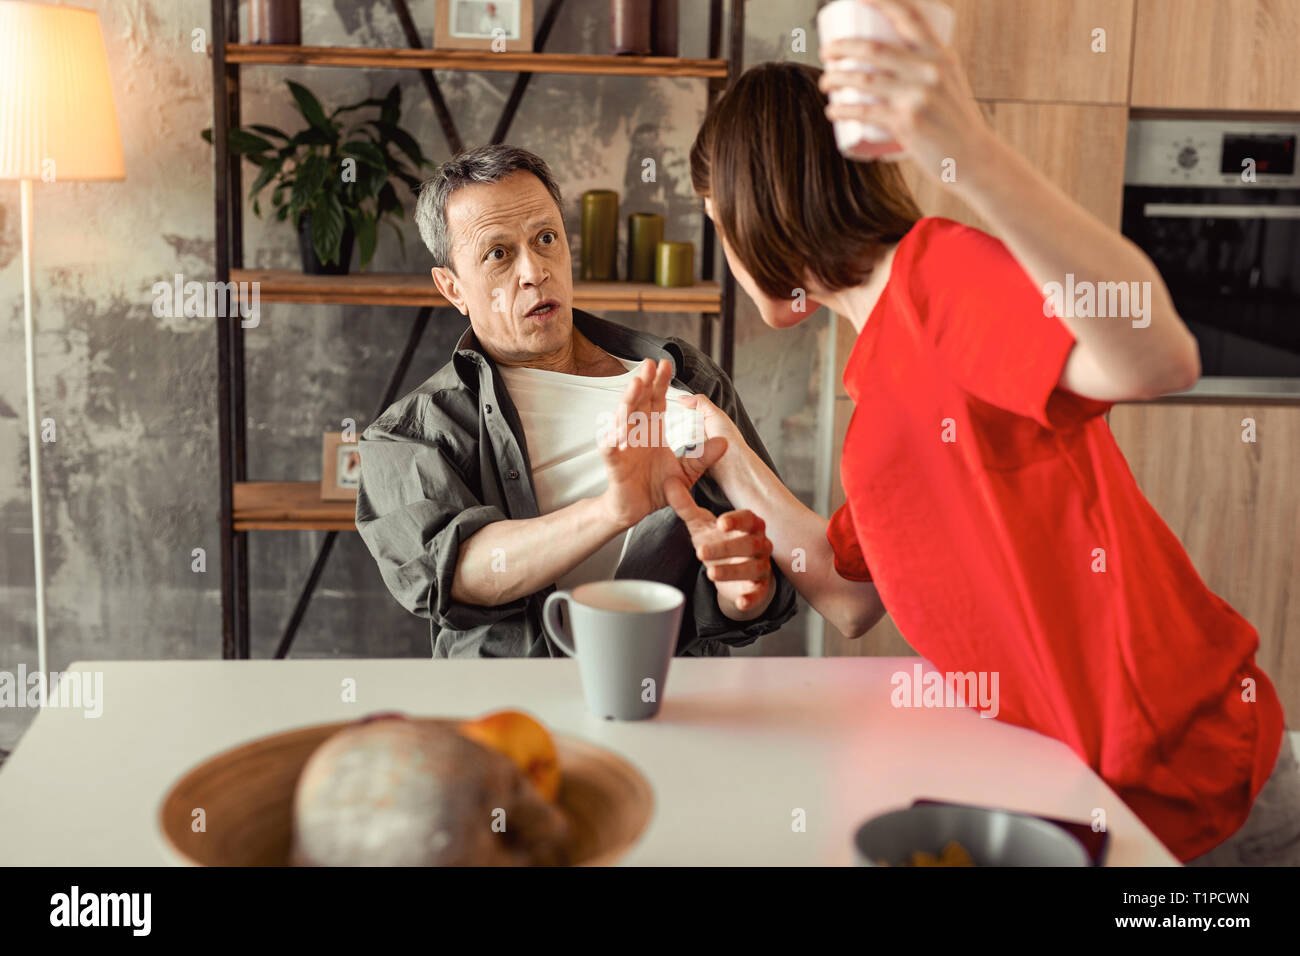 Scared and shocked man stopping his crazy wife - Stock Image